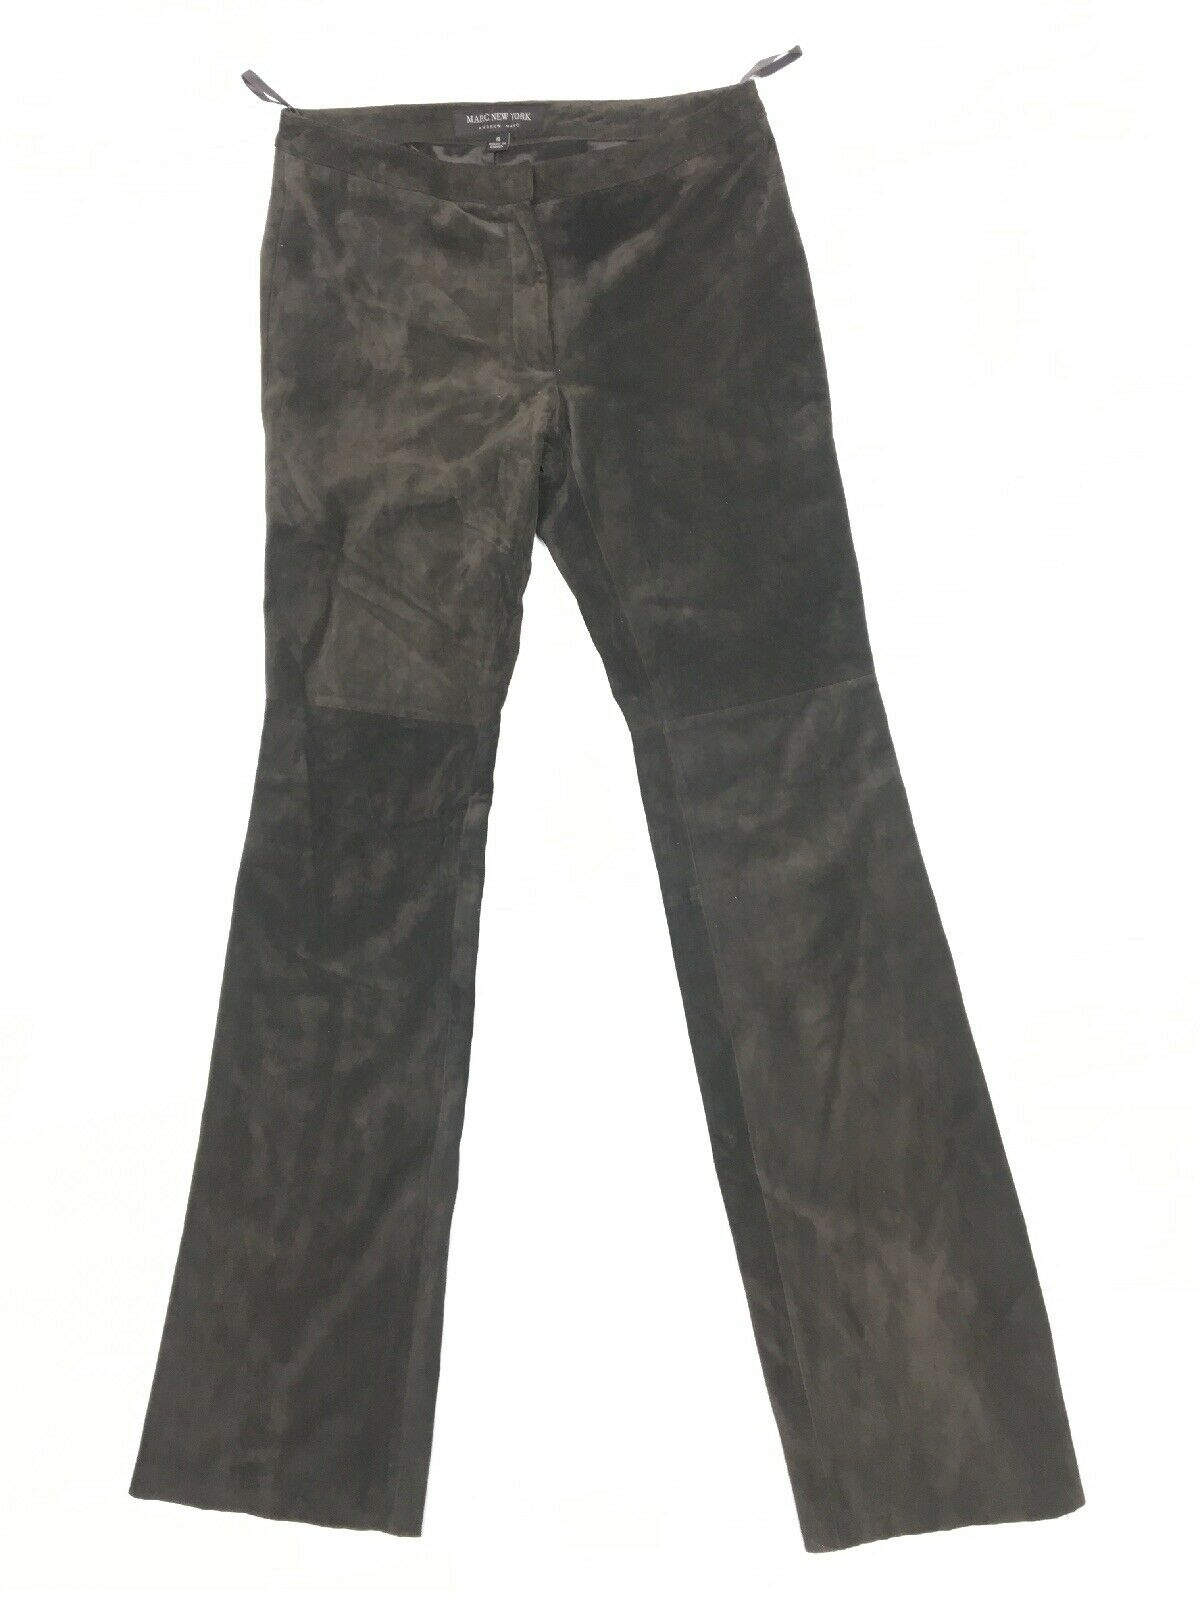 Andrew Marc New York Women's Brown Suede Leather Dress Pants Size 4 x 35